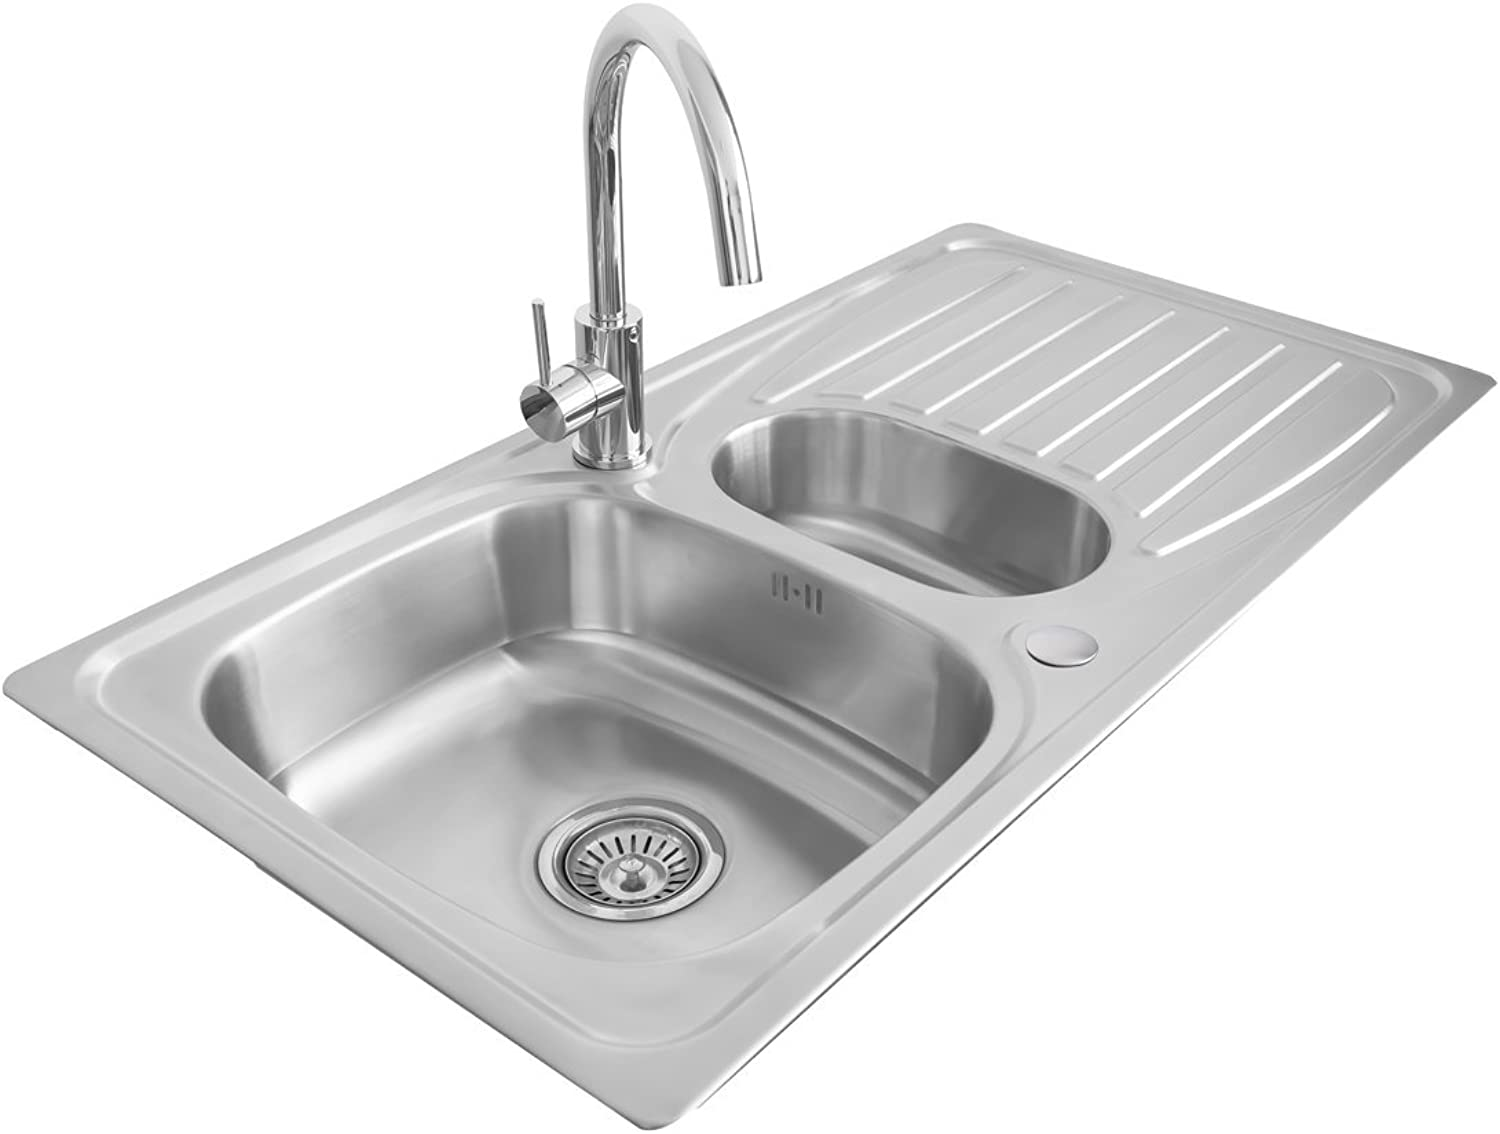 Valle Taber Reversible Inset Stainless Steel Kitchen Sink 950x500mm 1.5 Bowl with Drainer + FREE Waste Kit